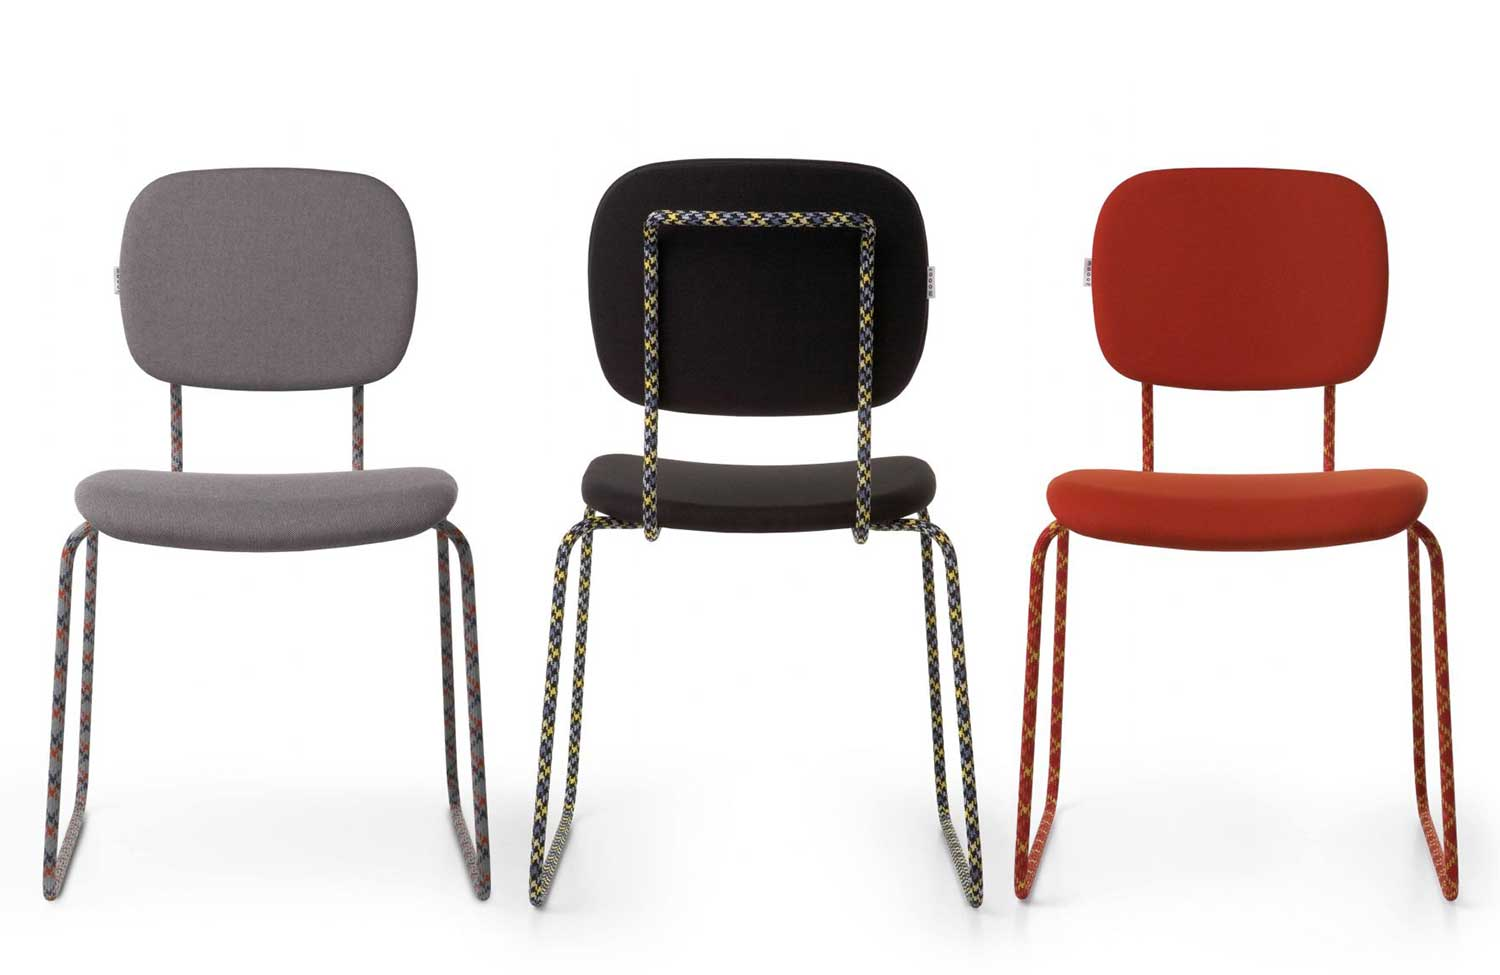 Vica Chair by Bertjan Pot for Moooi | Yellowtrace.